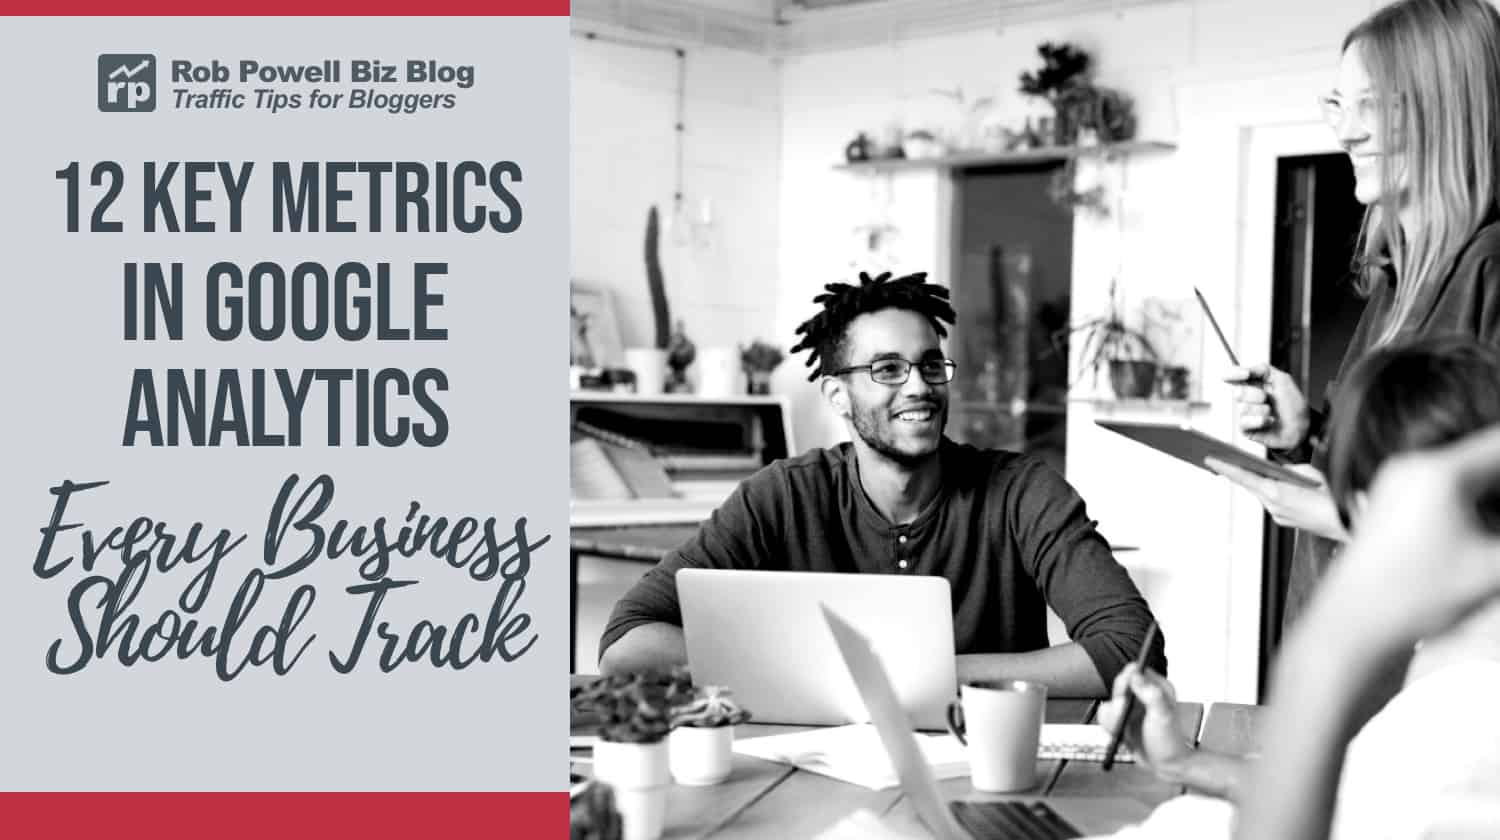 12 key metrics in Google Analytics